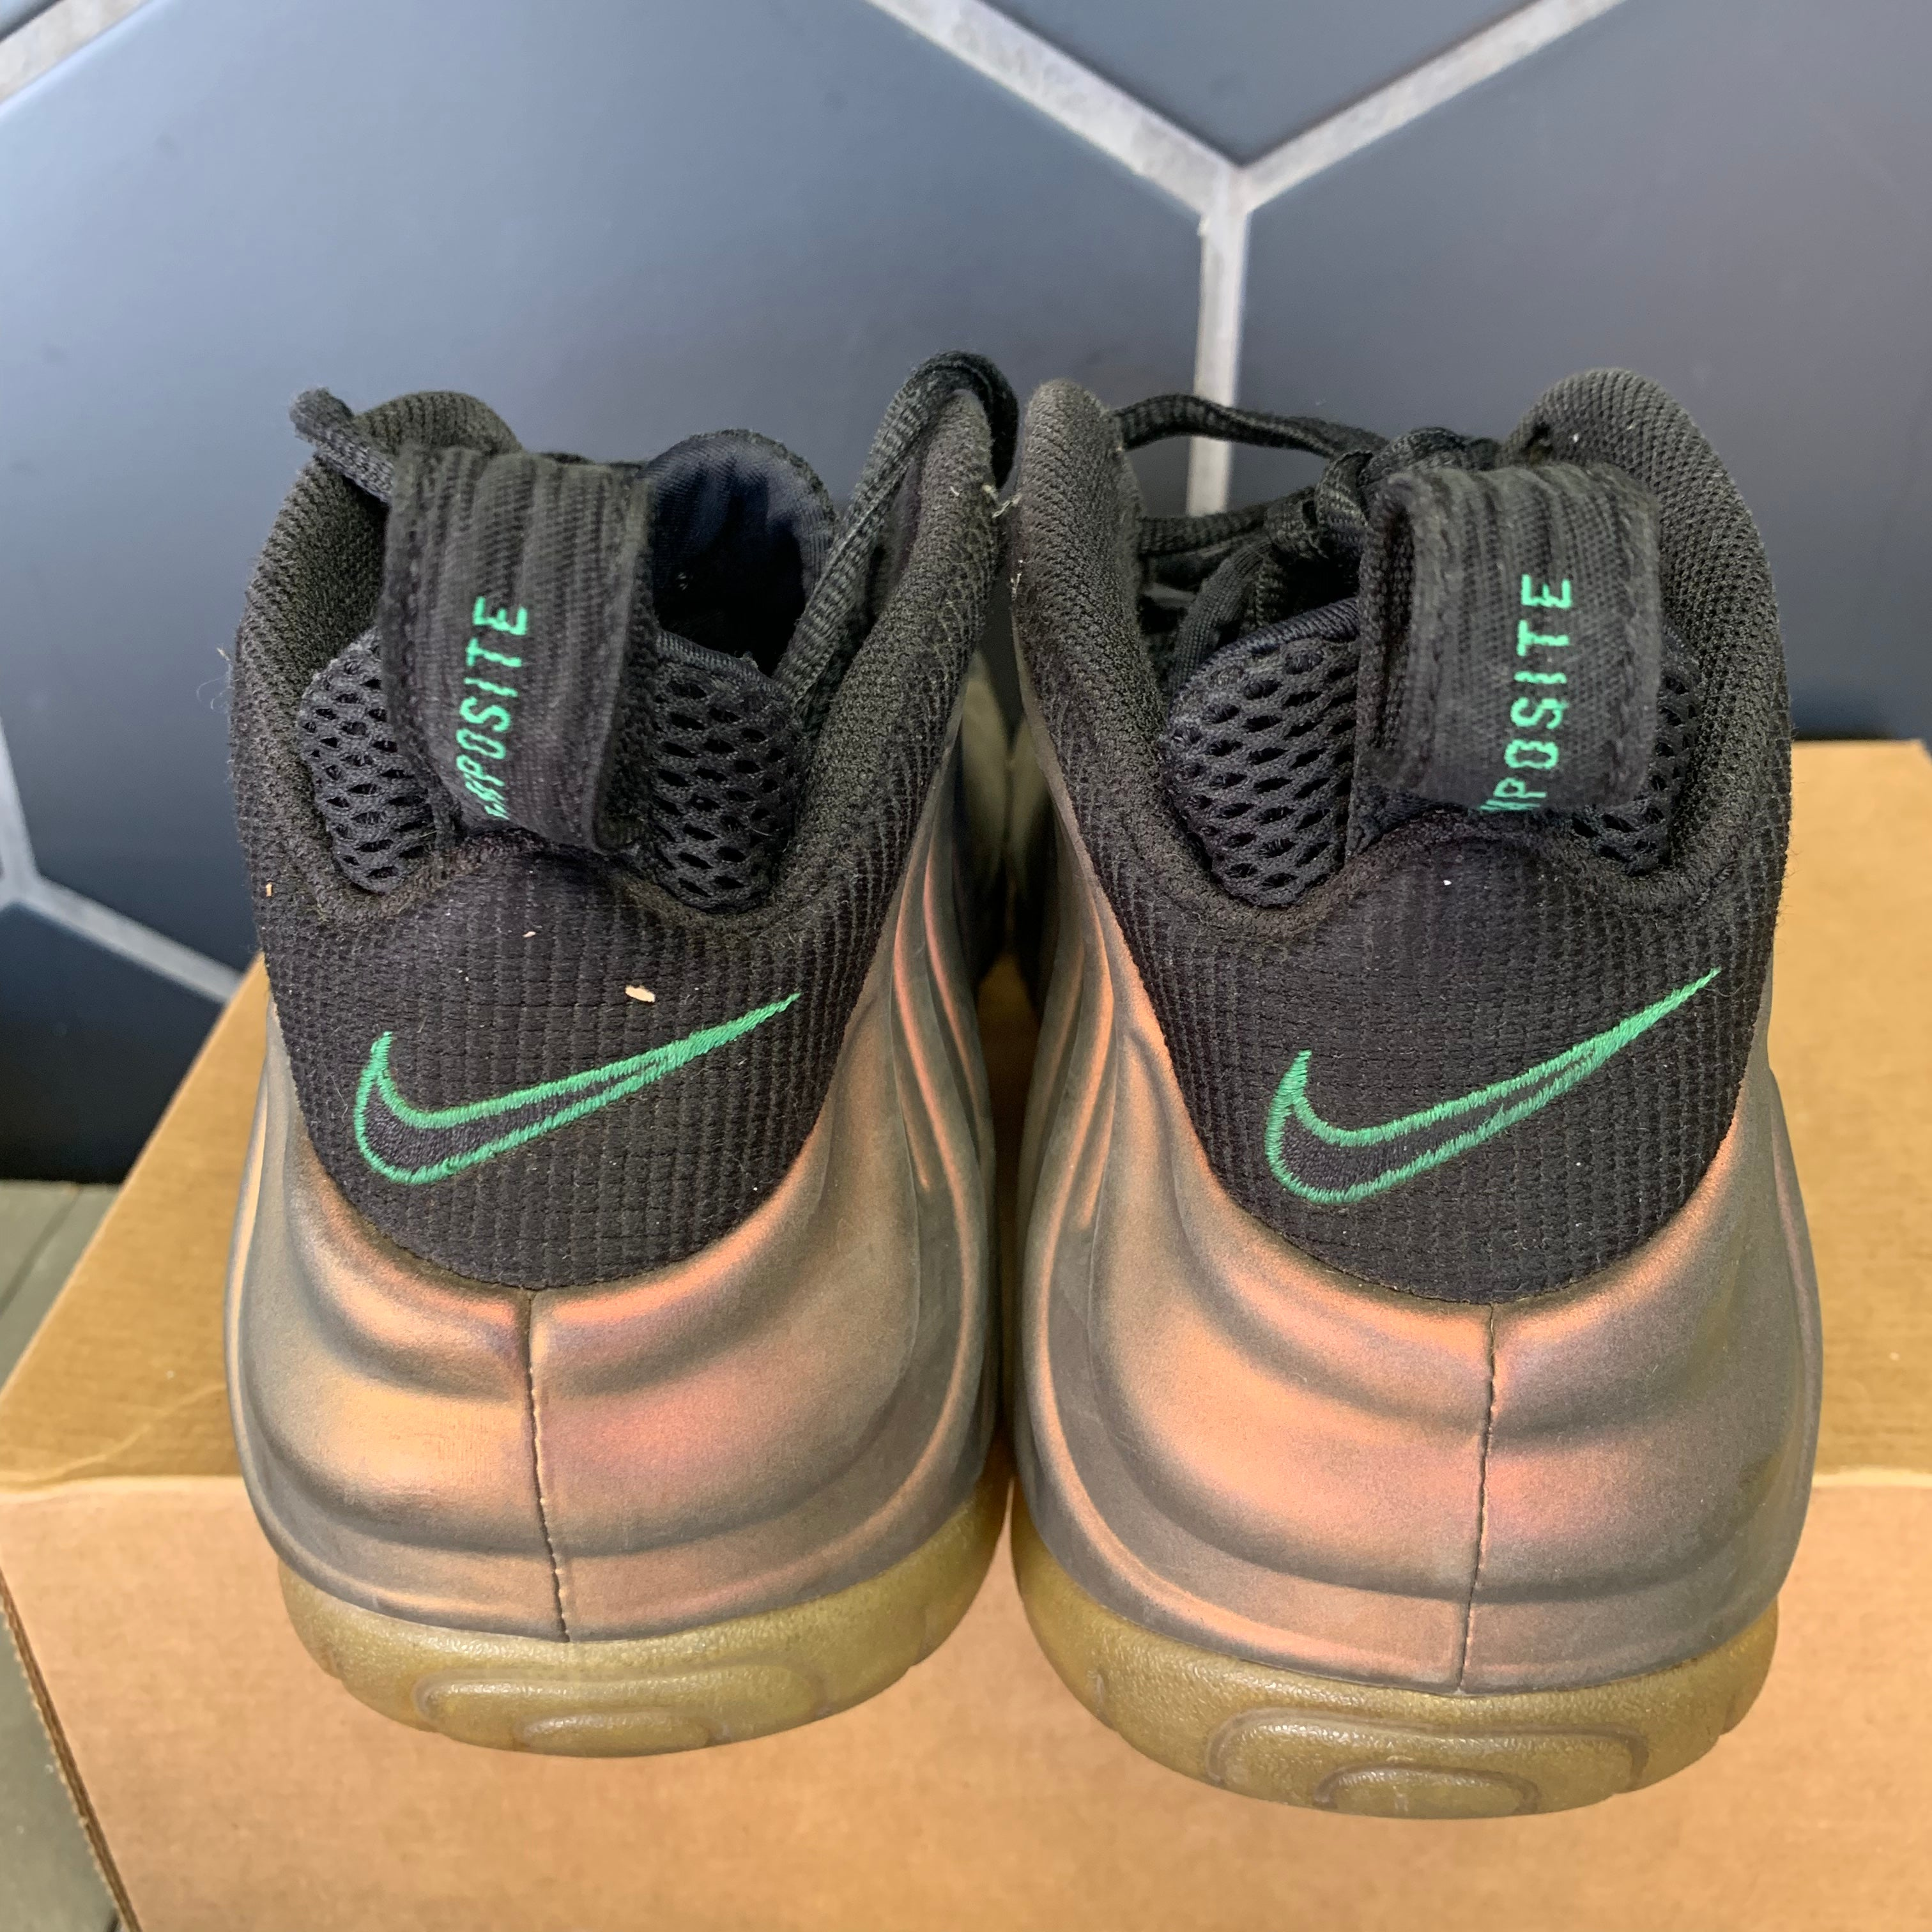 Used W/O Box! Nike Air Foamposite Pro Gym Green Shoe Size 9.5